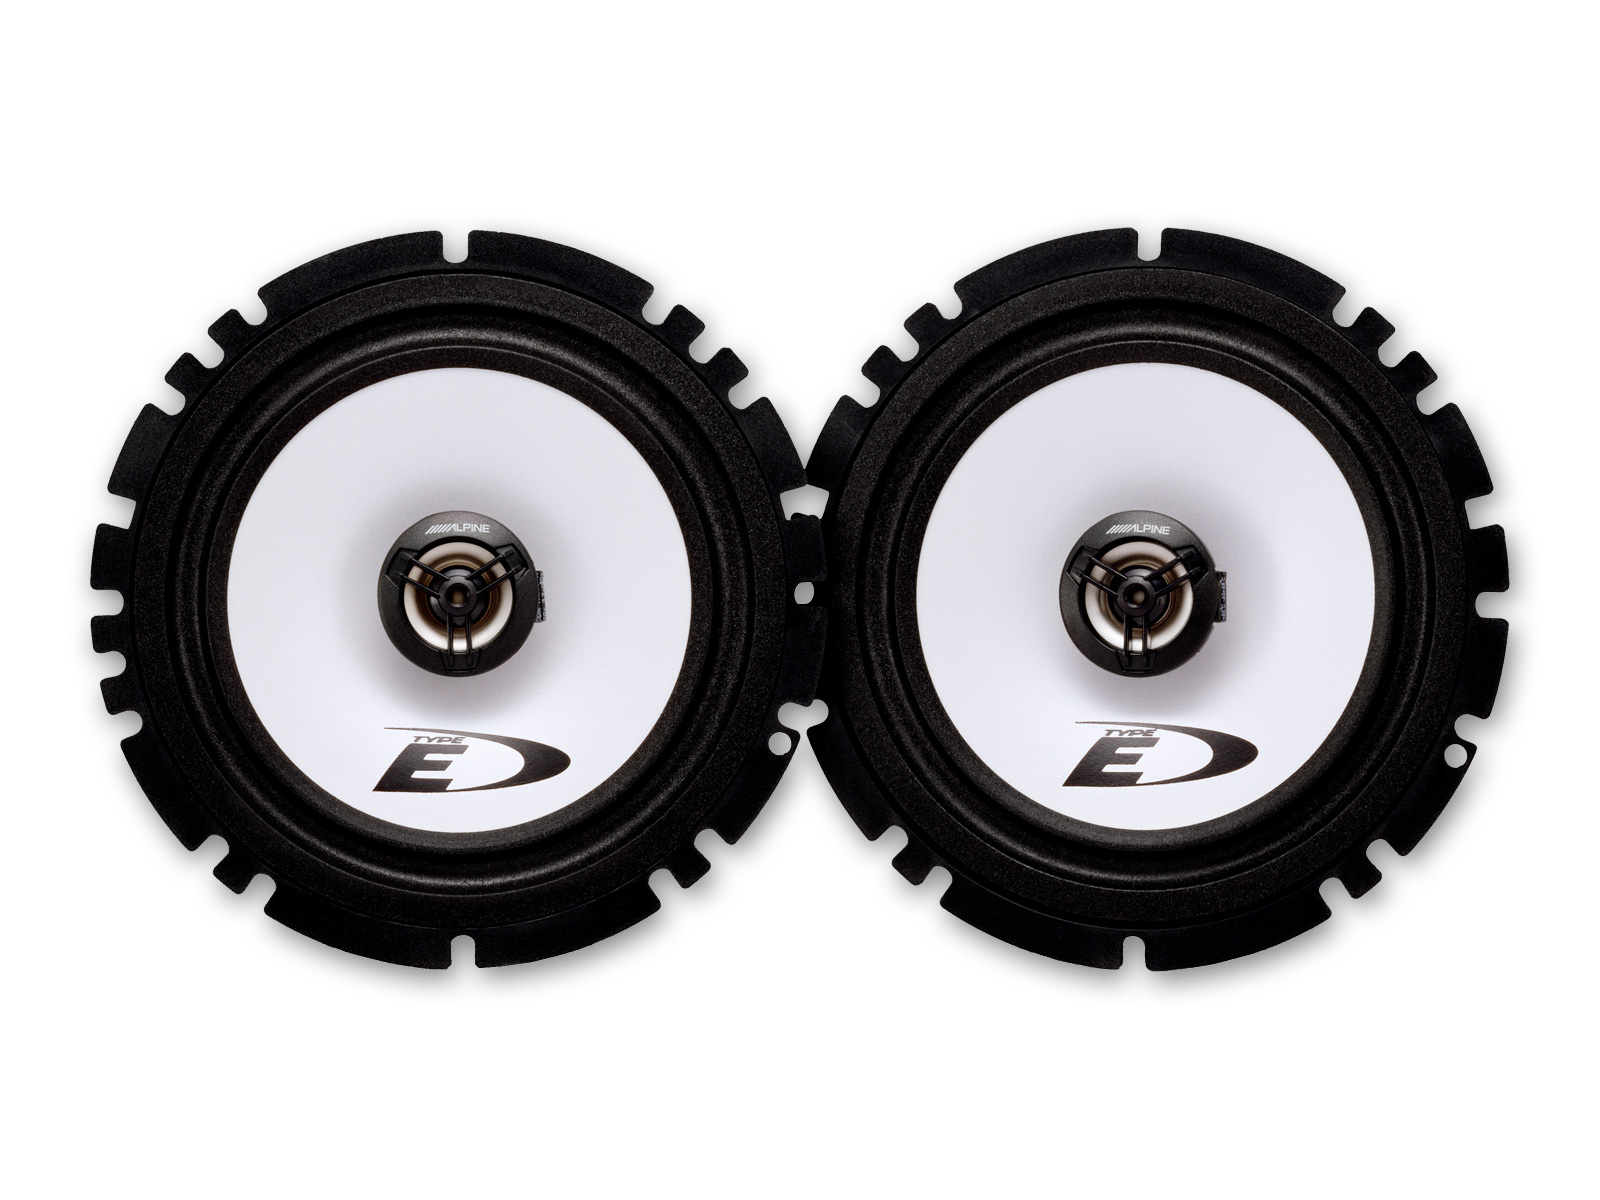 http://italy.alpine-europe.com/fileadmin/images/MainNavigation/Products/Product_pics/14_Speakers/06_CustomFit_Speakers/SXE1725S/productpic_SXE1725S_01.jpg